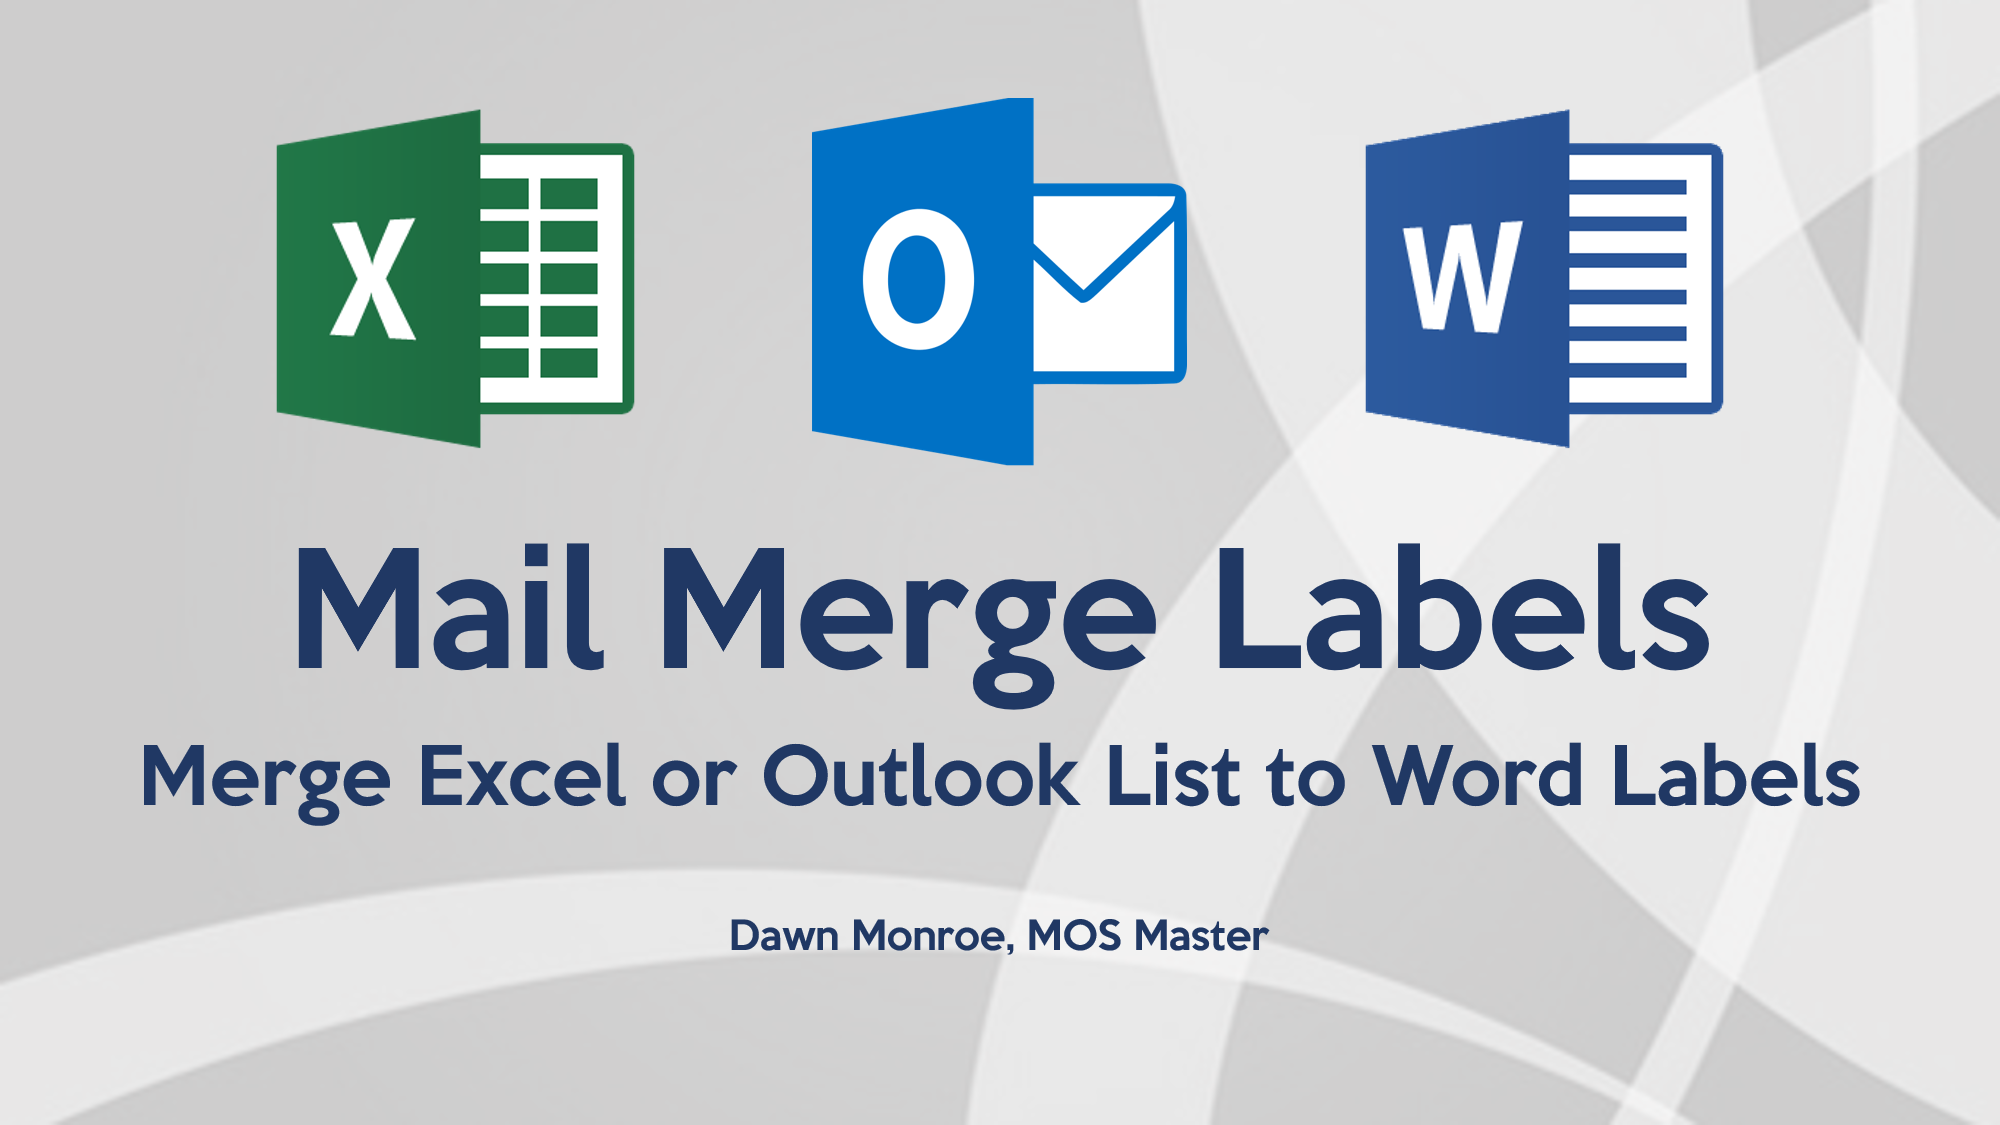 Mail Merge Labels